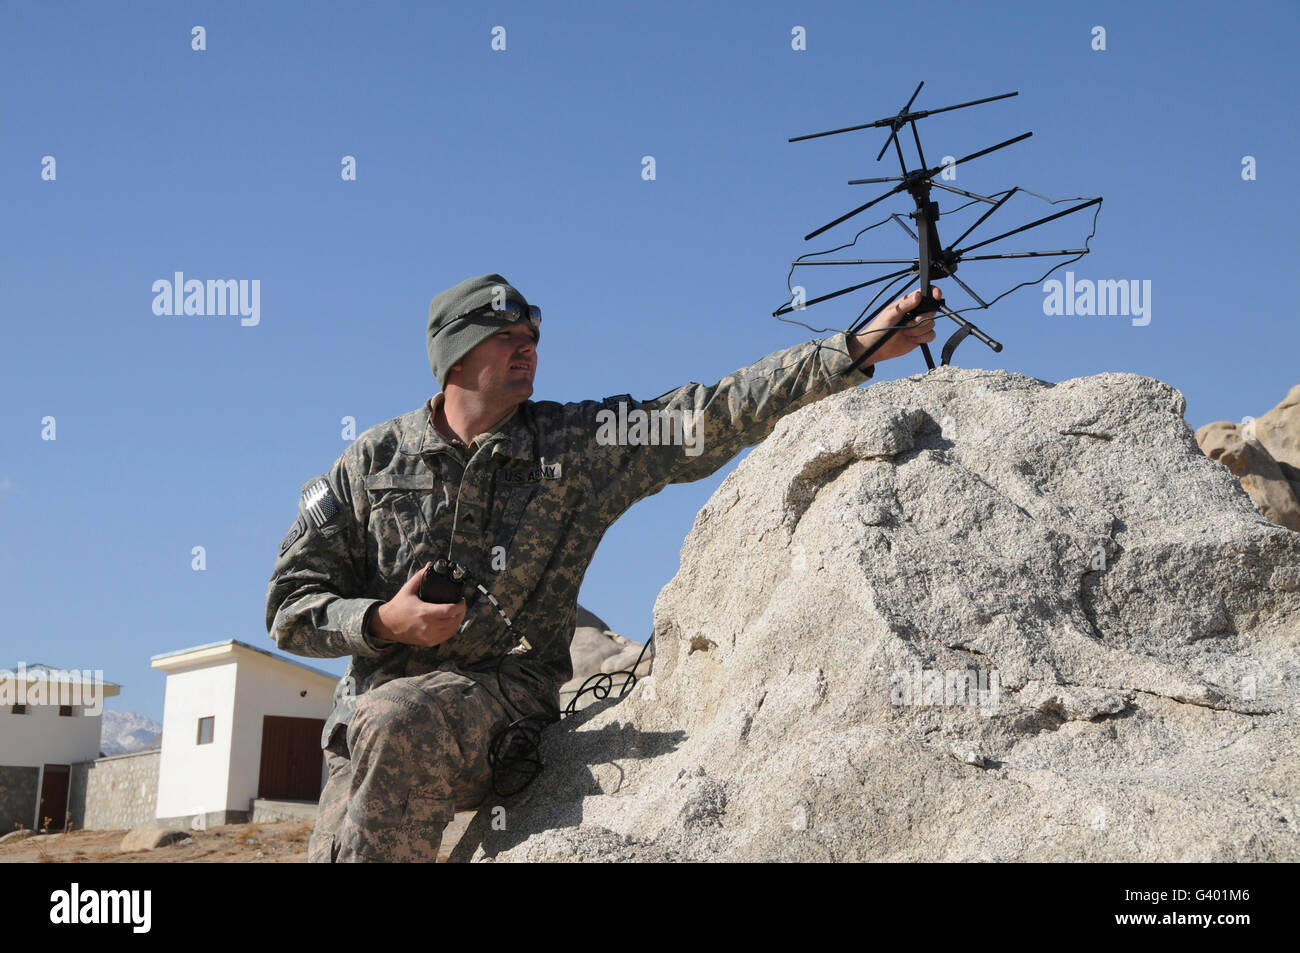 U.S. Army soldier sets up a tactical satellite. - Stock Image